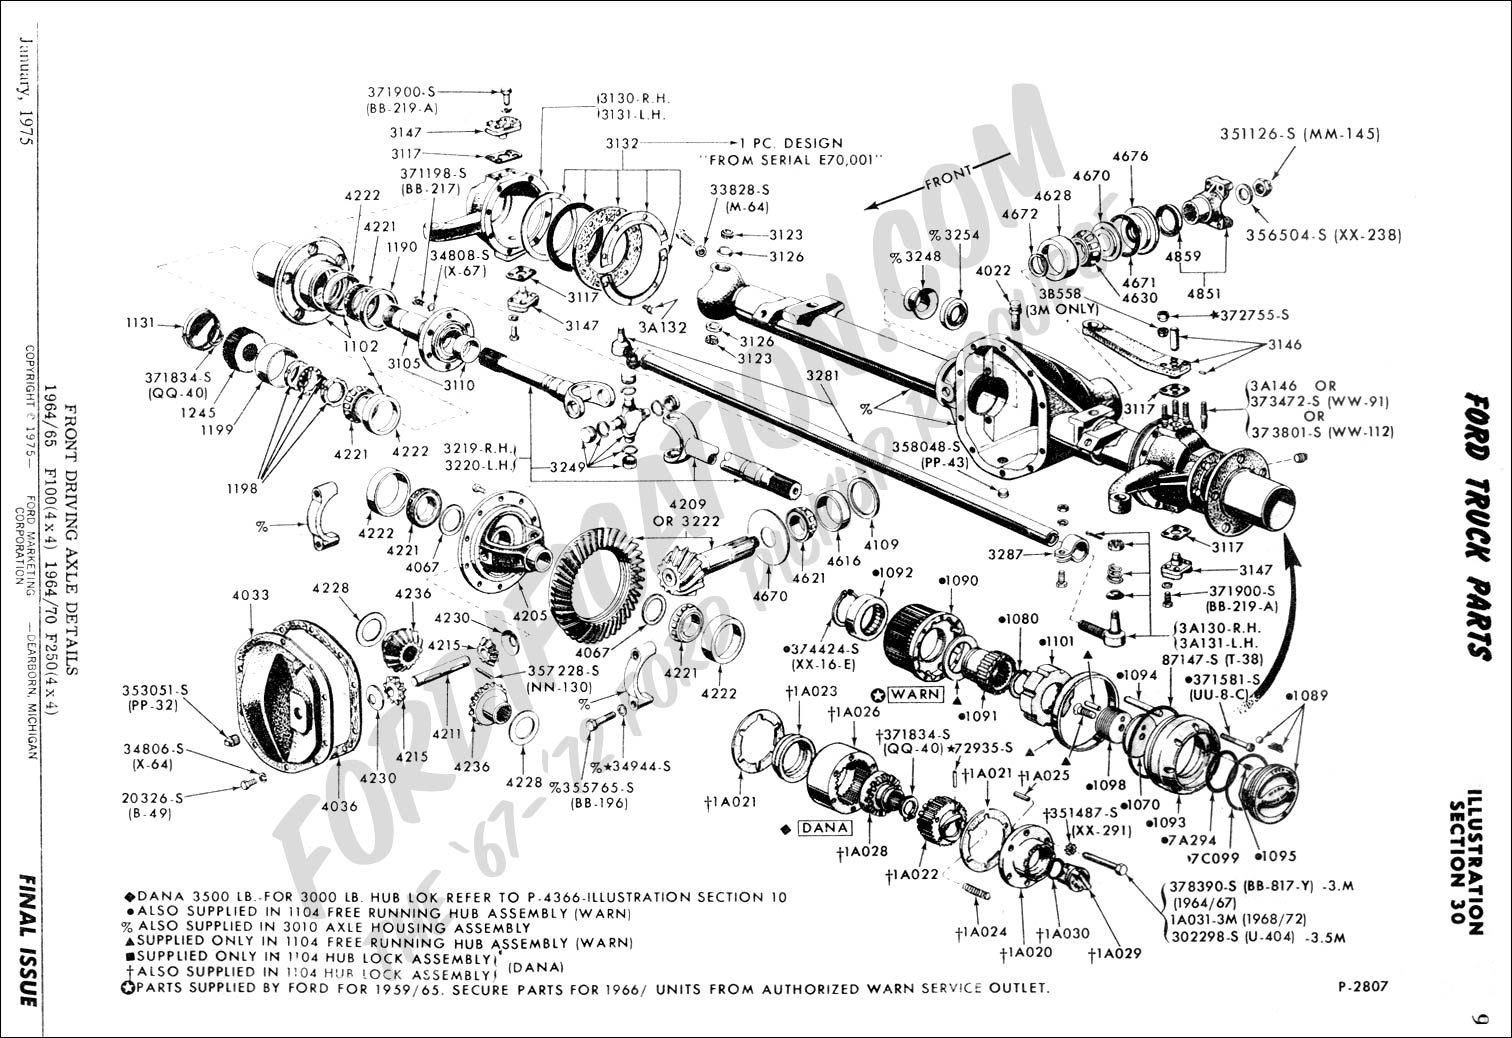 2003 F250 4x4 Front End Suspension Diagram on 98 jeep cherokee engine wiring diagram